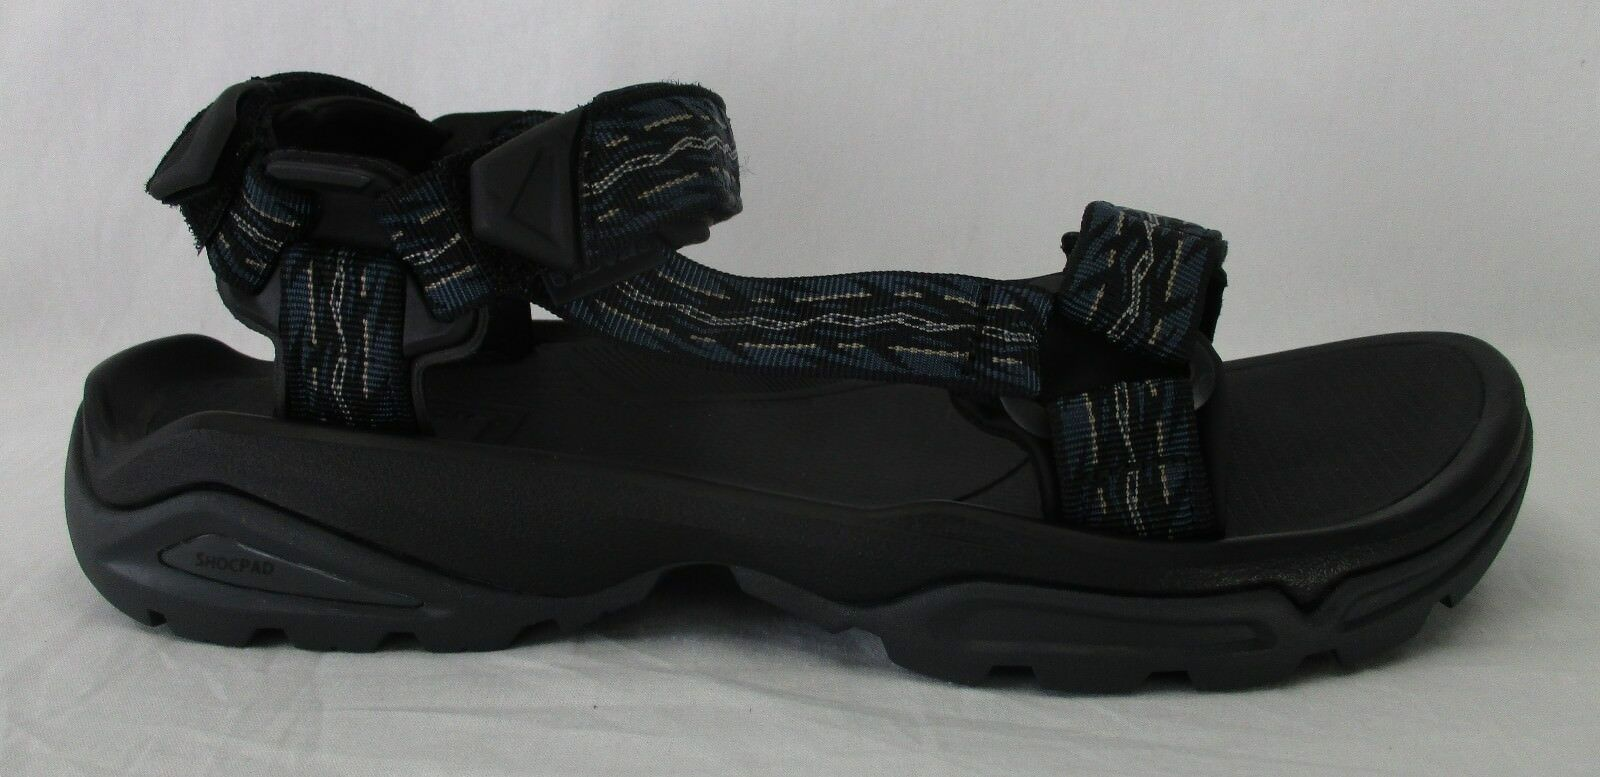 Teva Mens Terra Fi 4 Sandals 1004485 Firetread Midnight Size 13